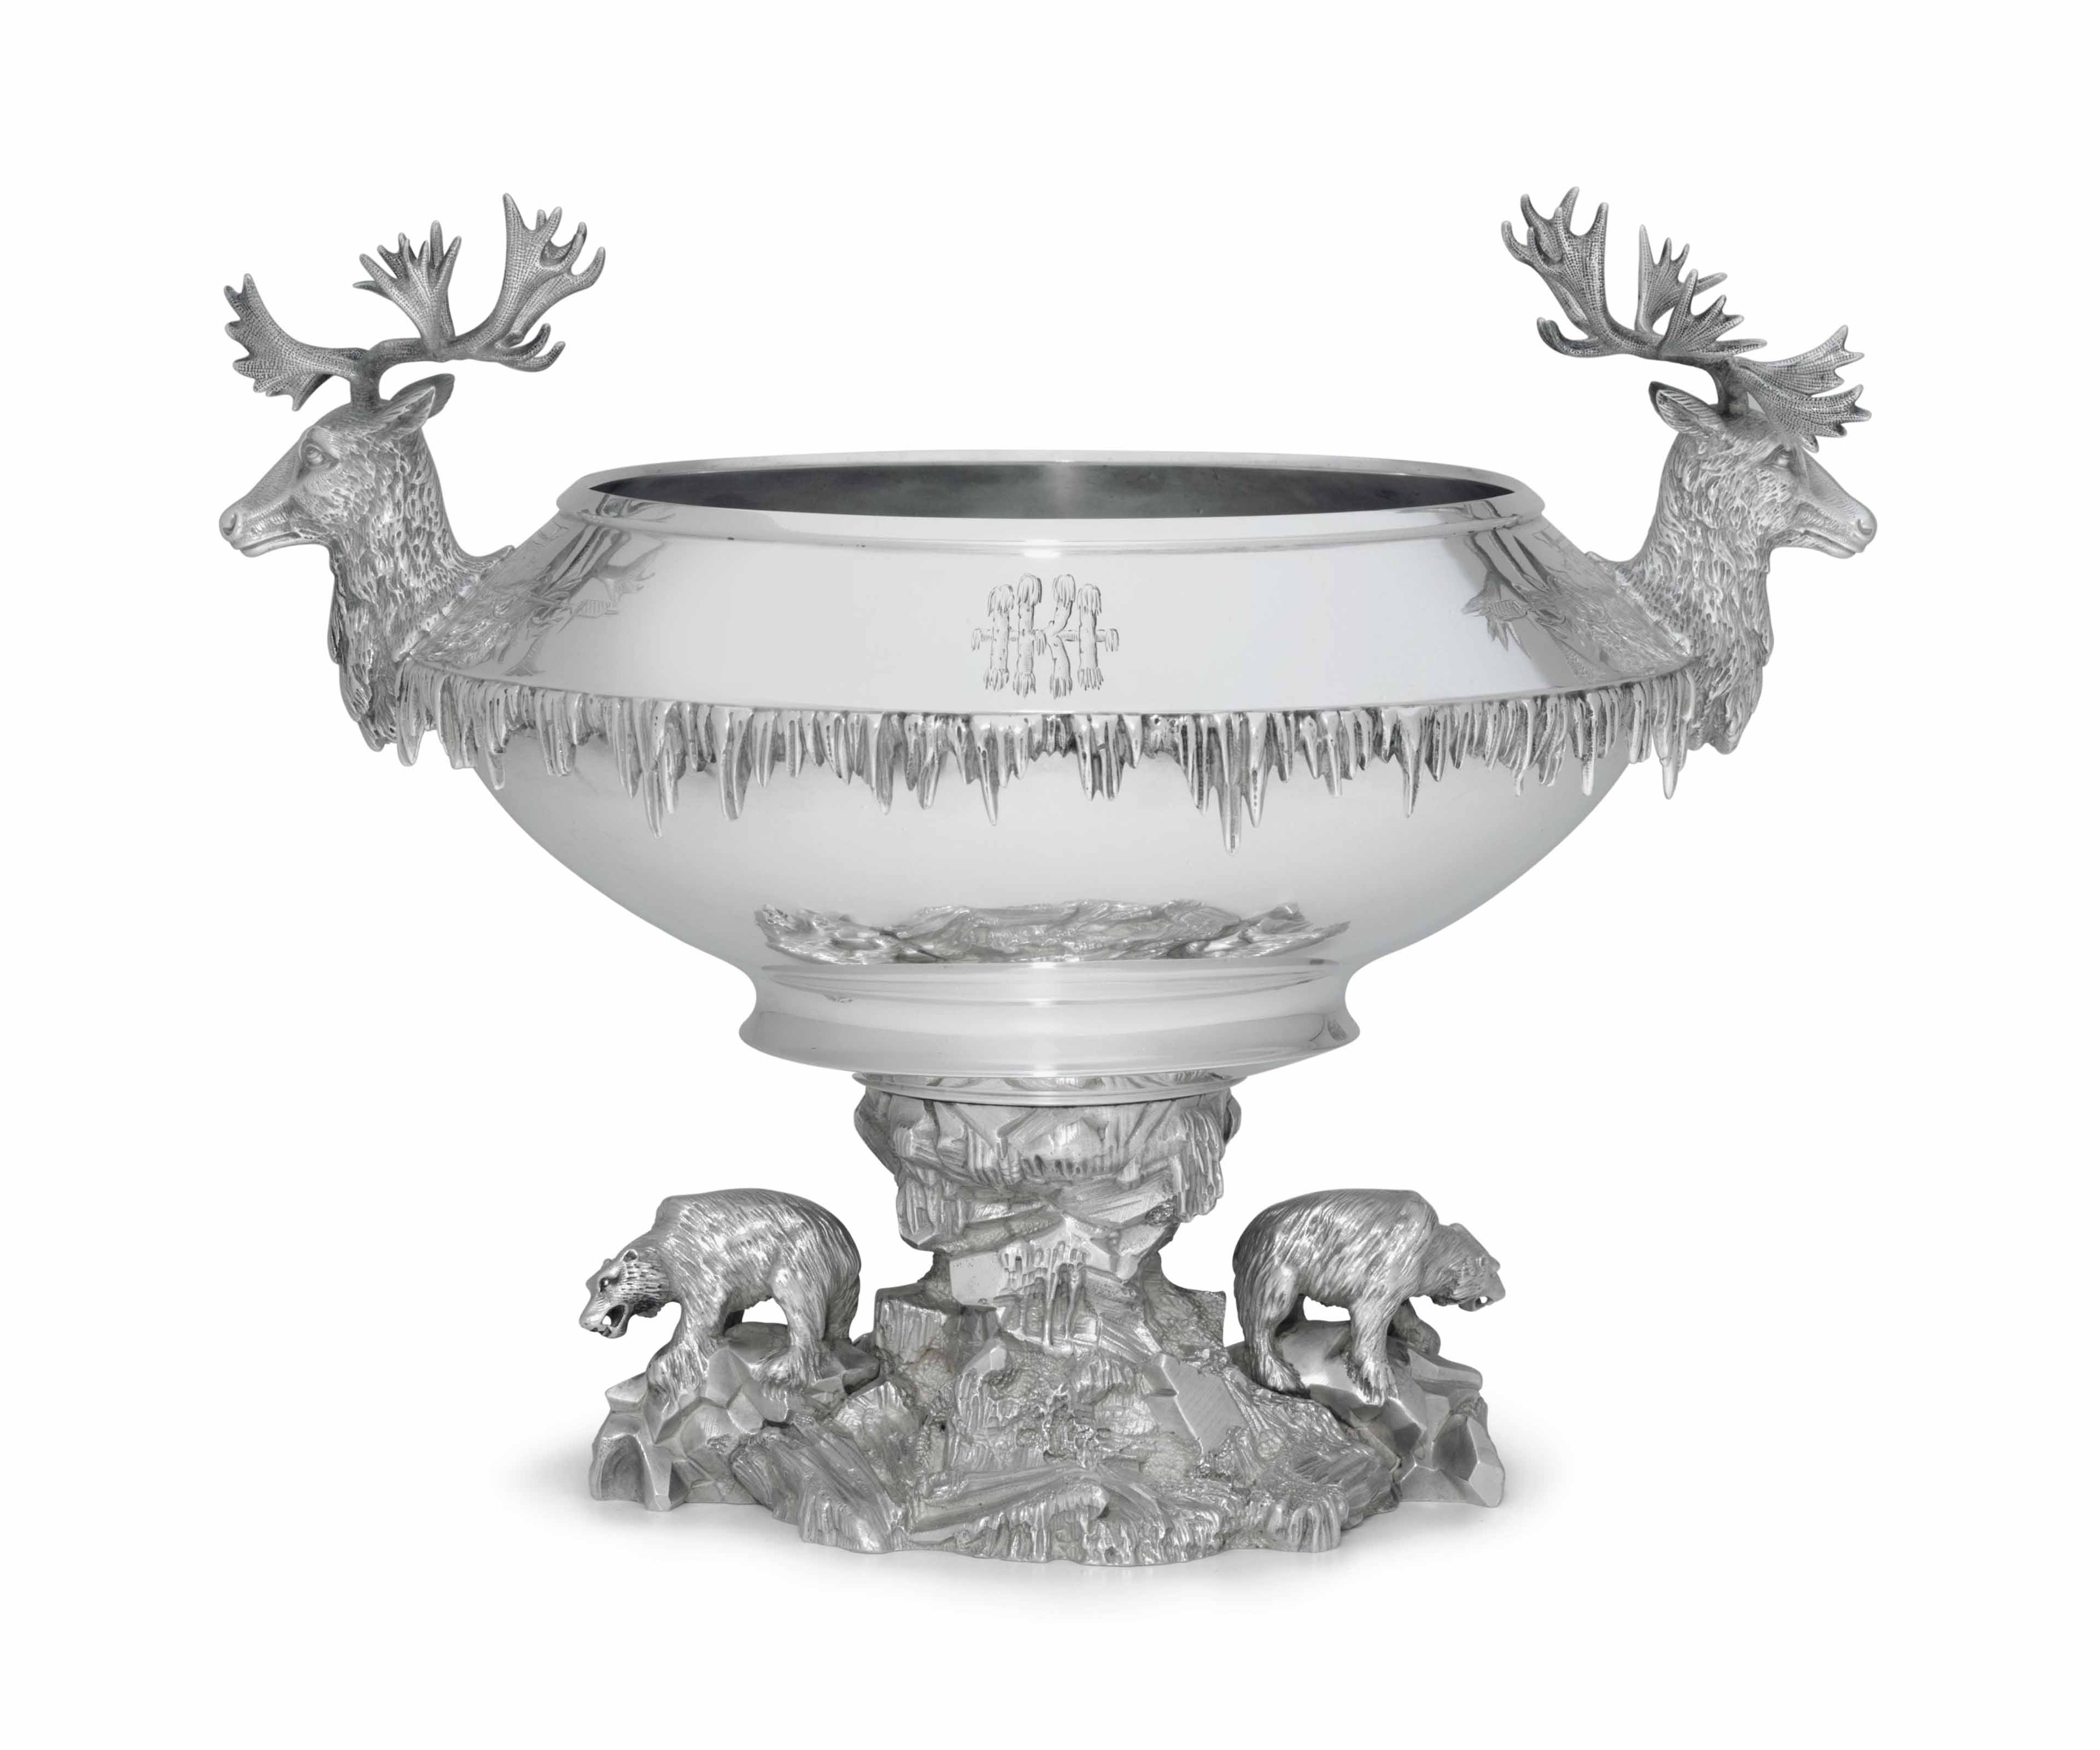 A SILVER ICE BOWL IN ALASKAN STYLE